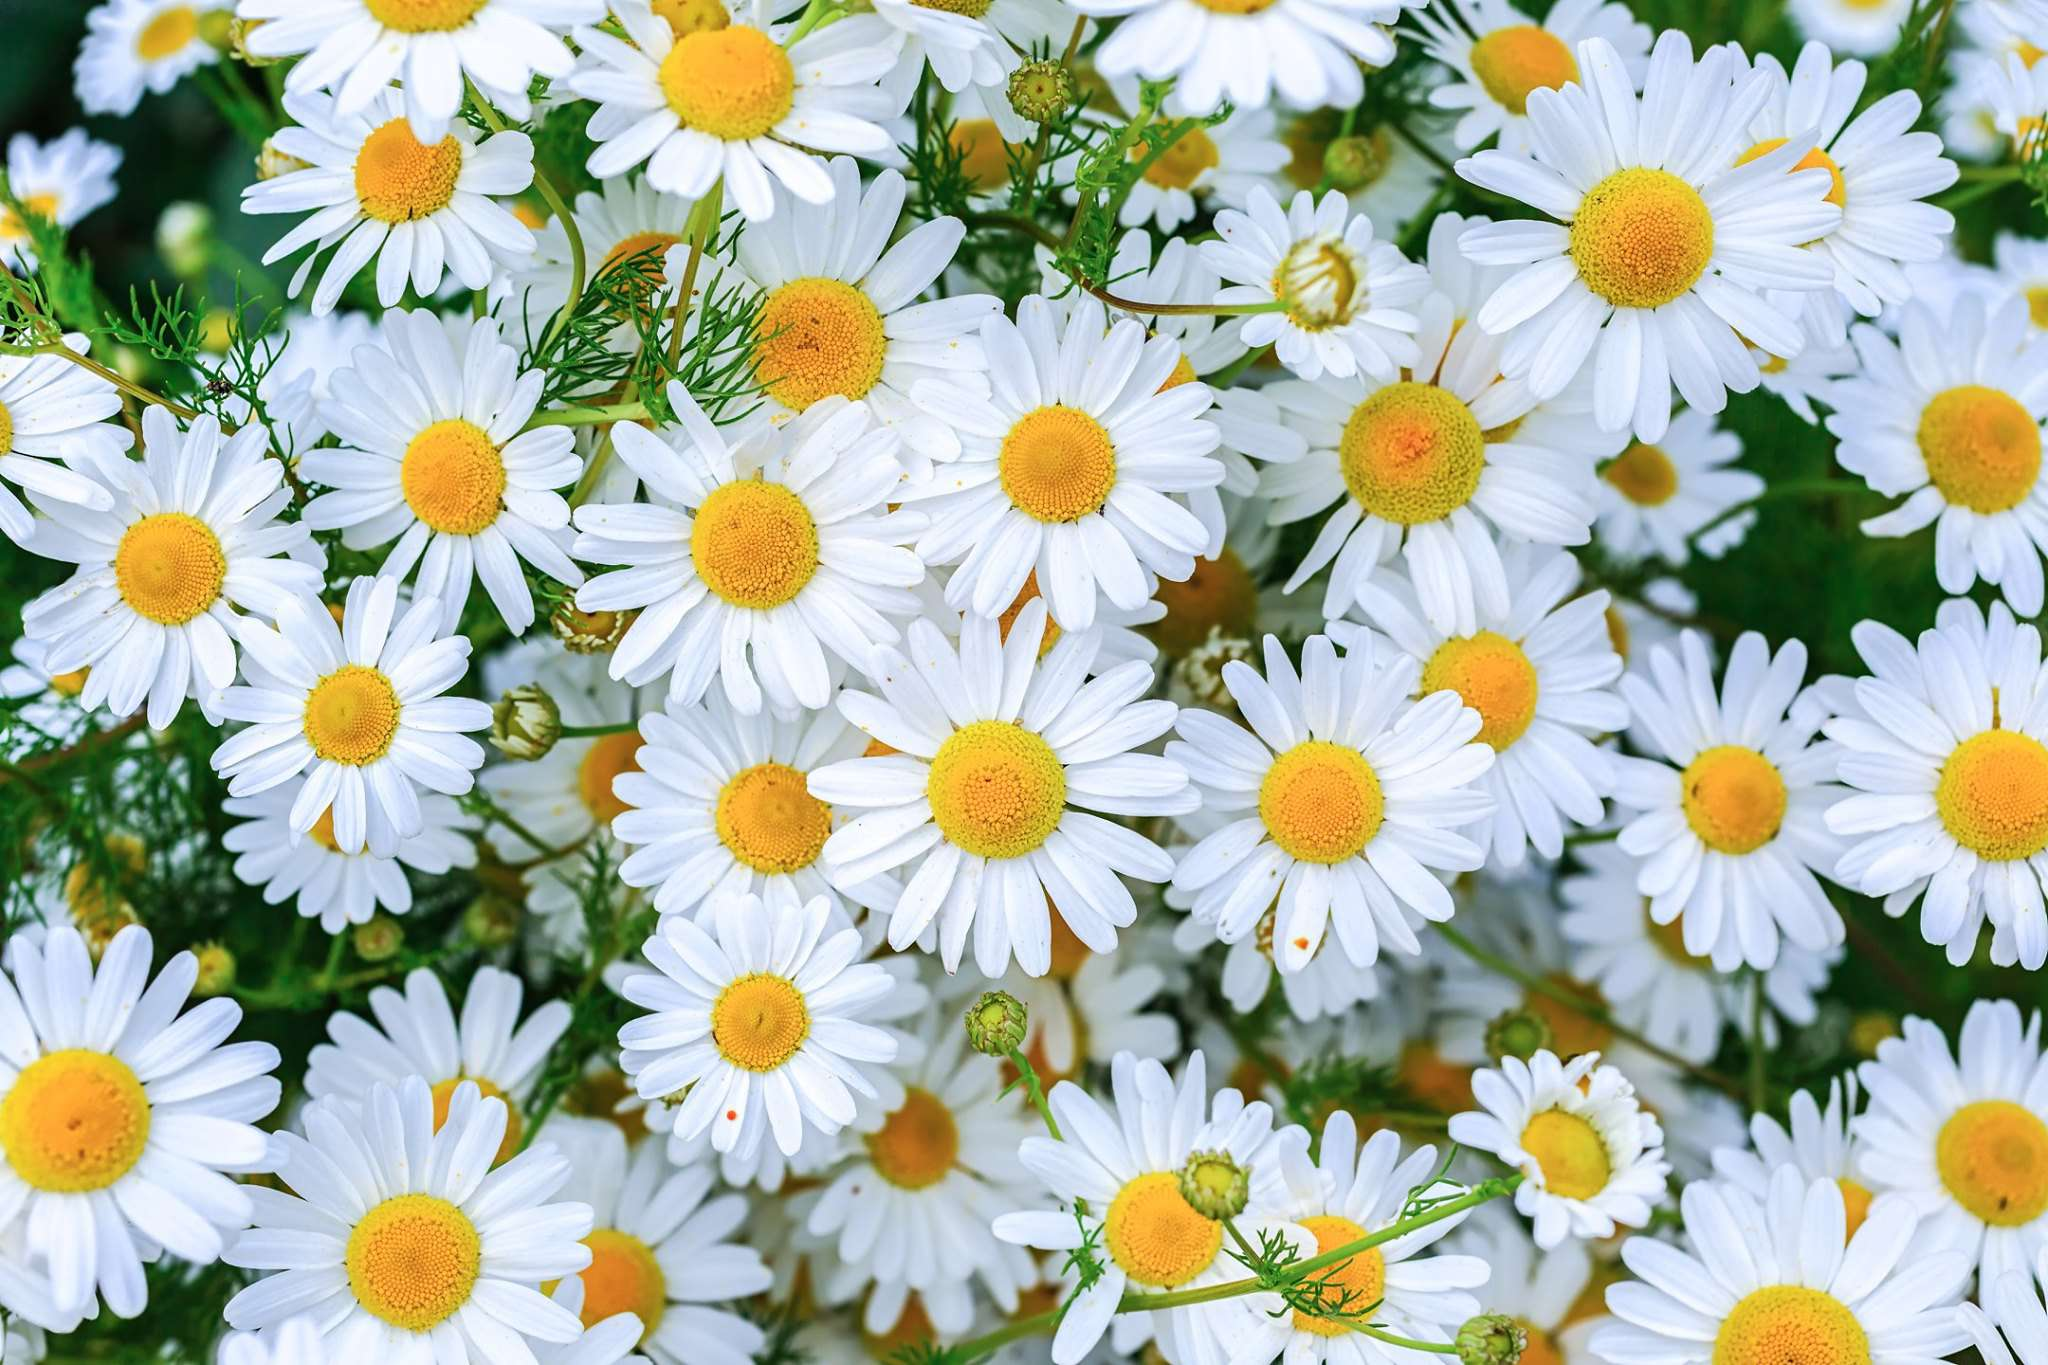 National Daisy Day Wishes Images download